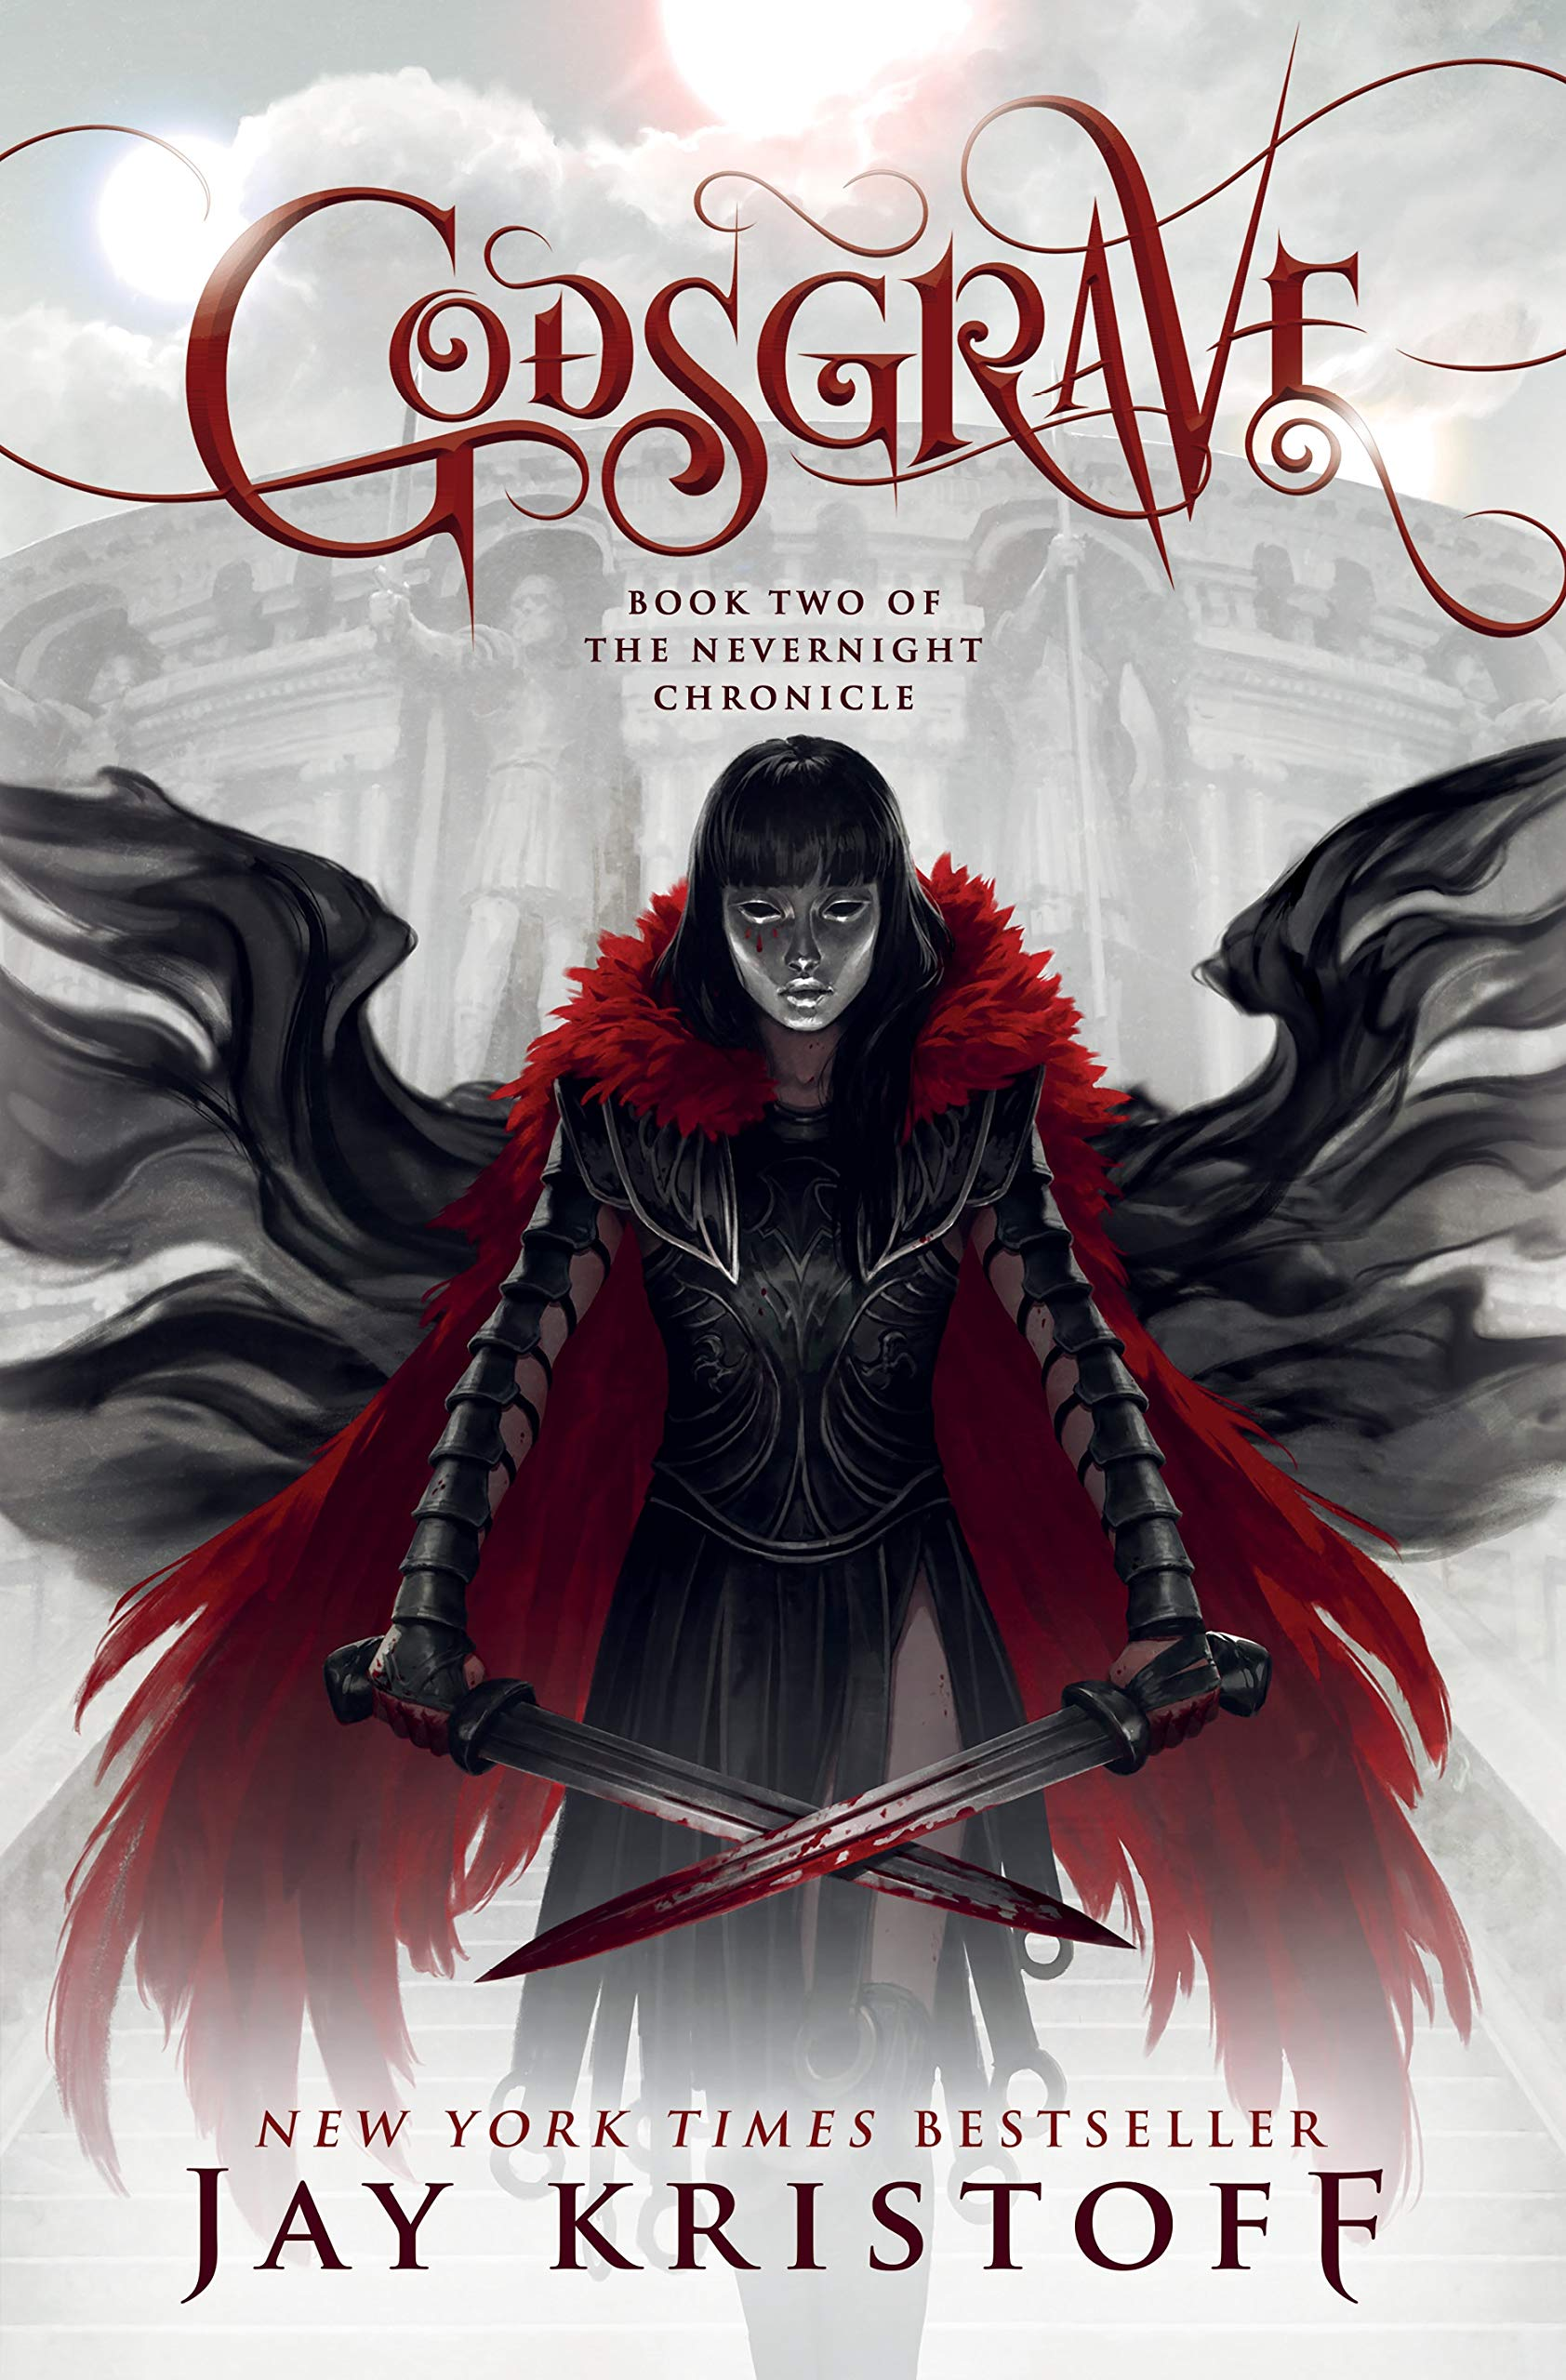 Godsgrave: Book Two of the Nevernight Chronicle: Kristoff, Jay ...